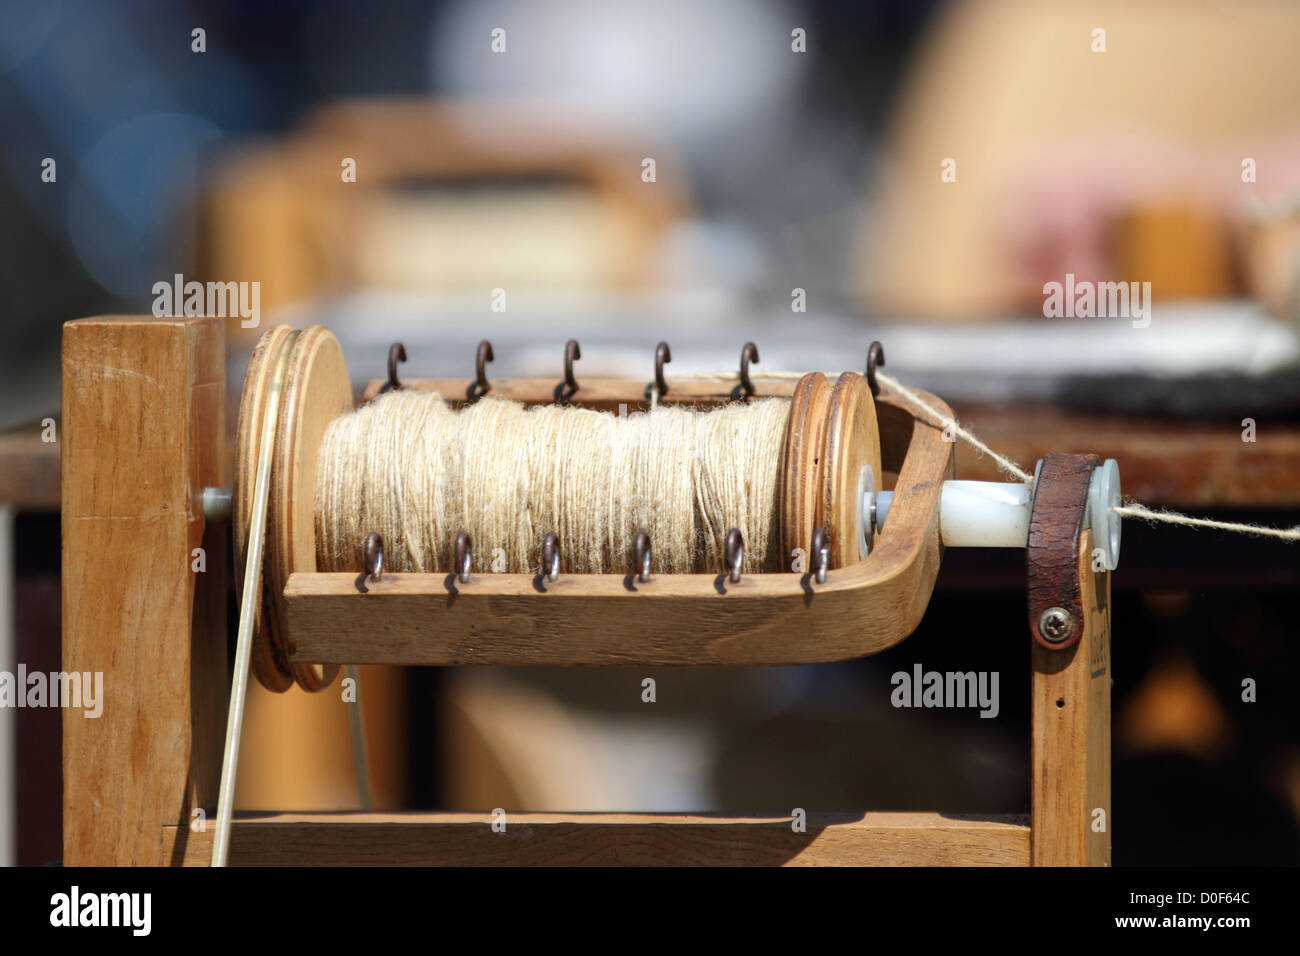 Close up of wool being spun on a spinning wheel. Stock Photo